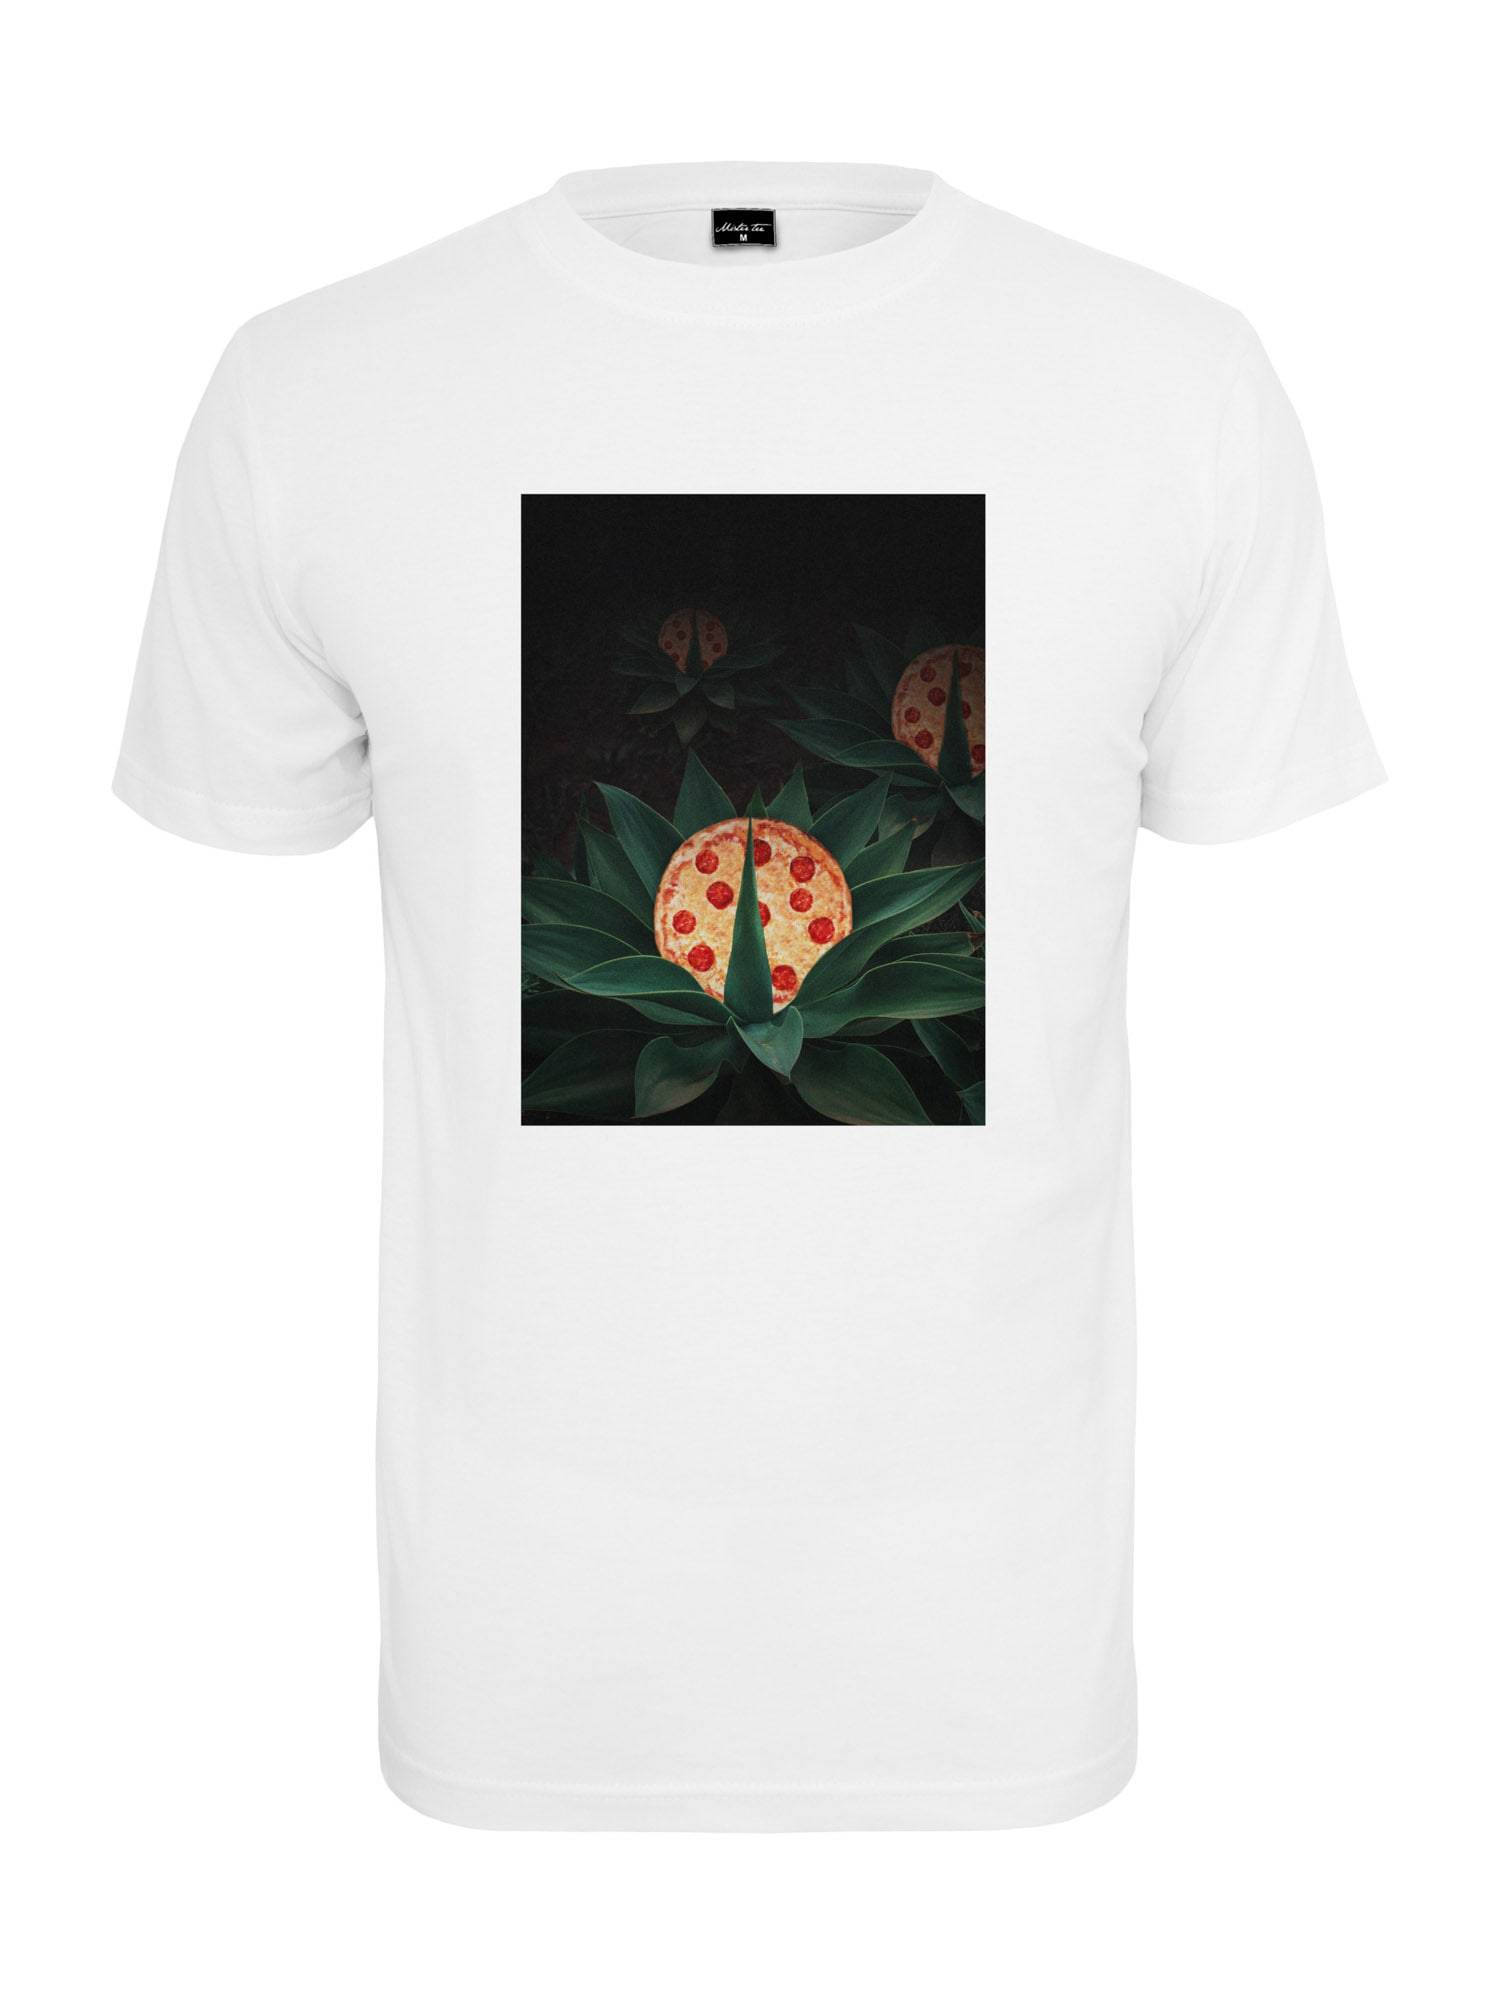 Tee T-Shirt 'Pizza Plant''  - Blanc - Taille: XS - male